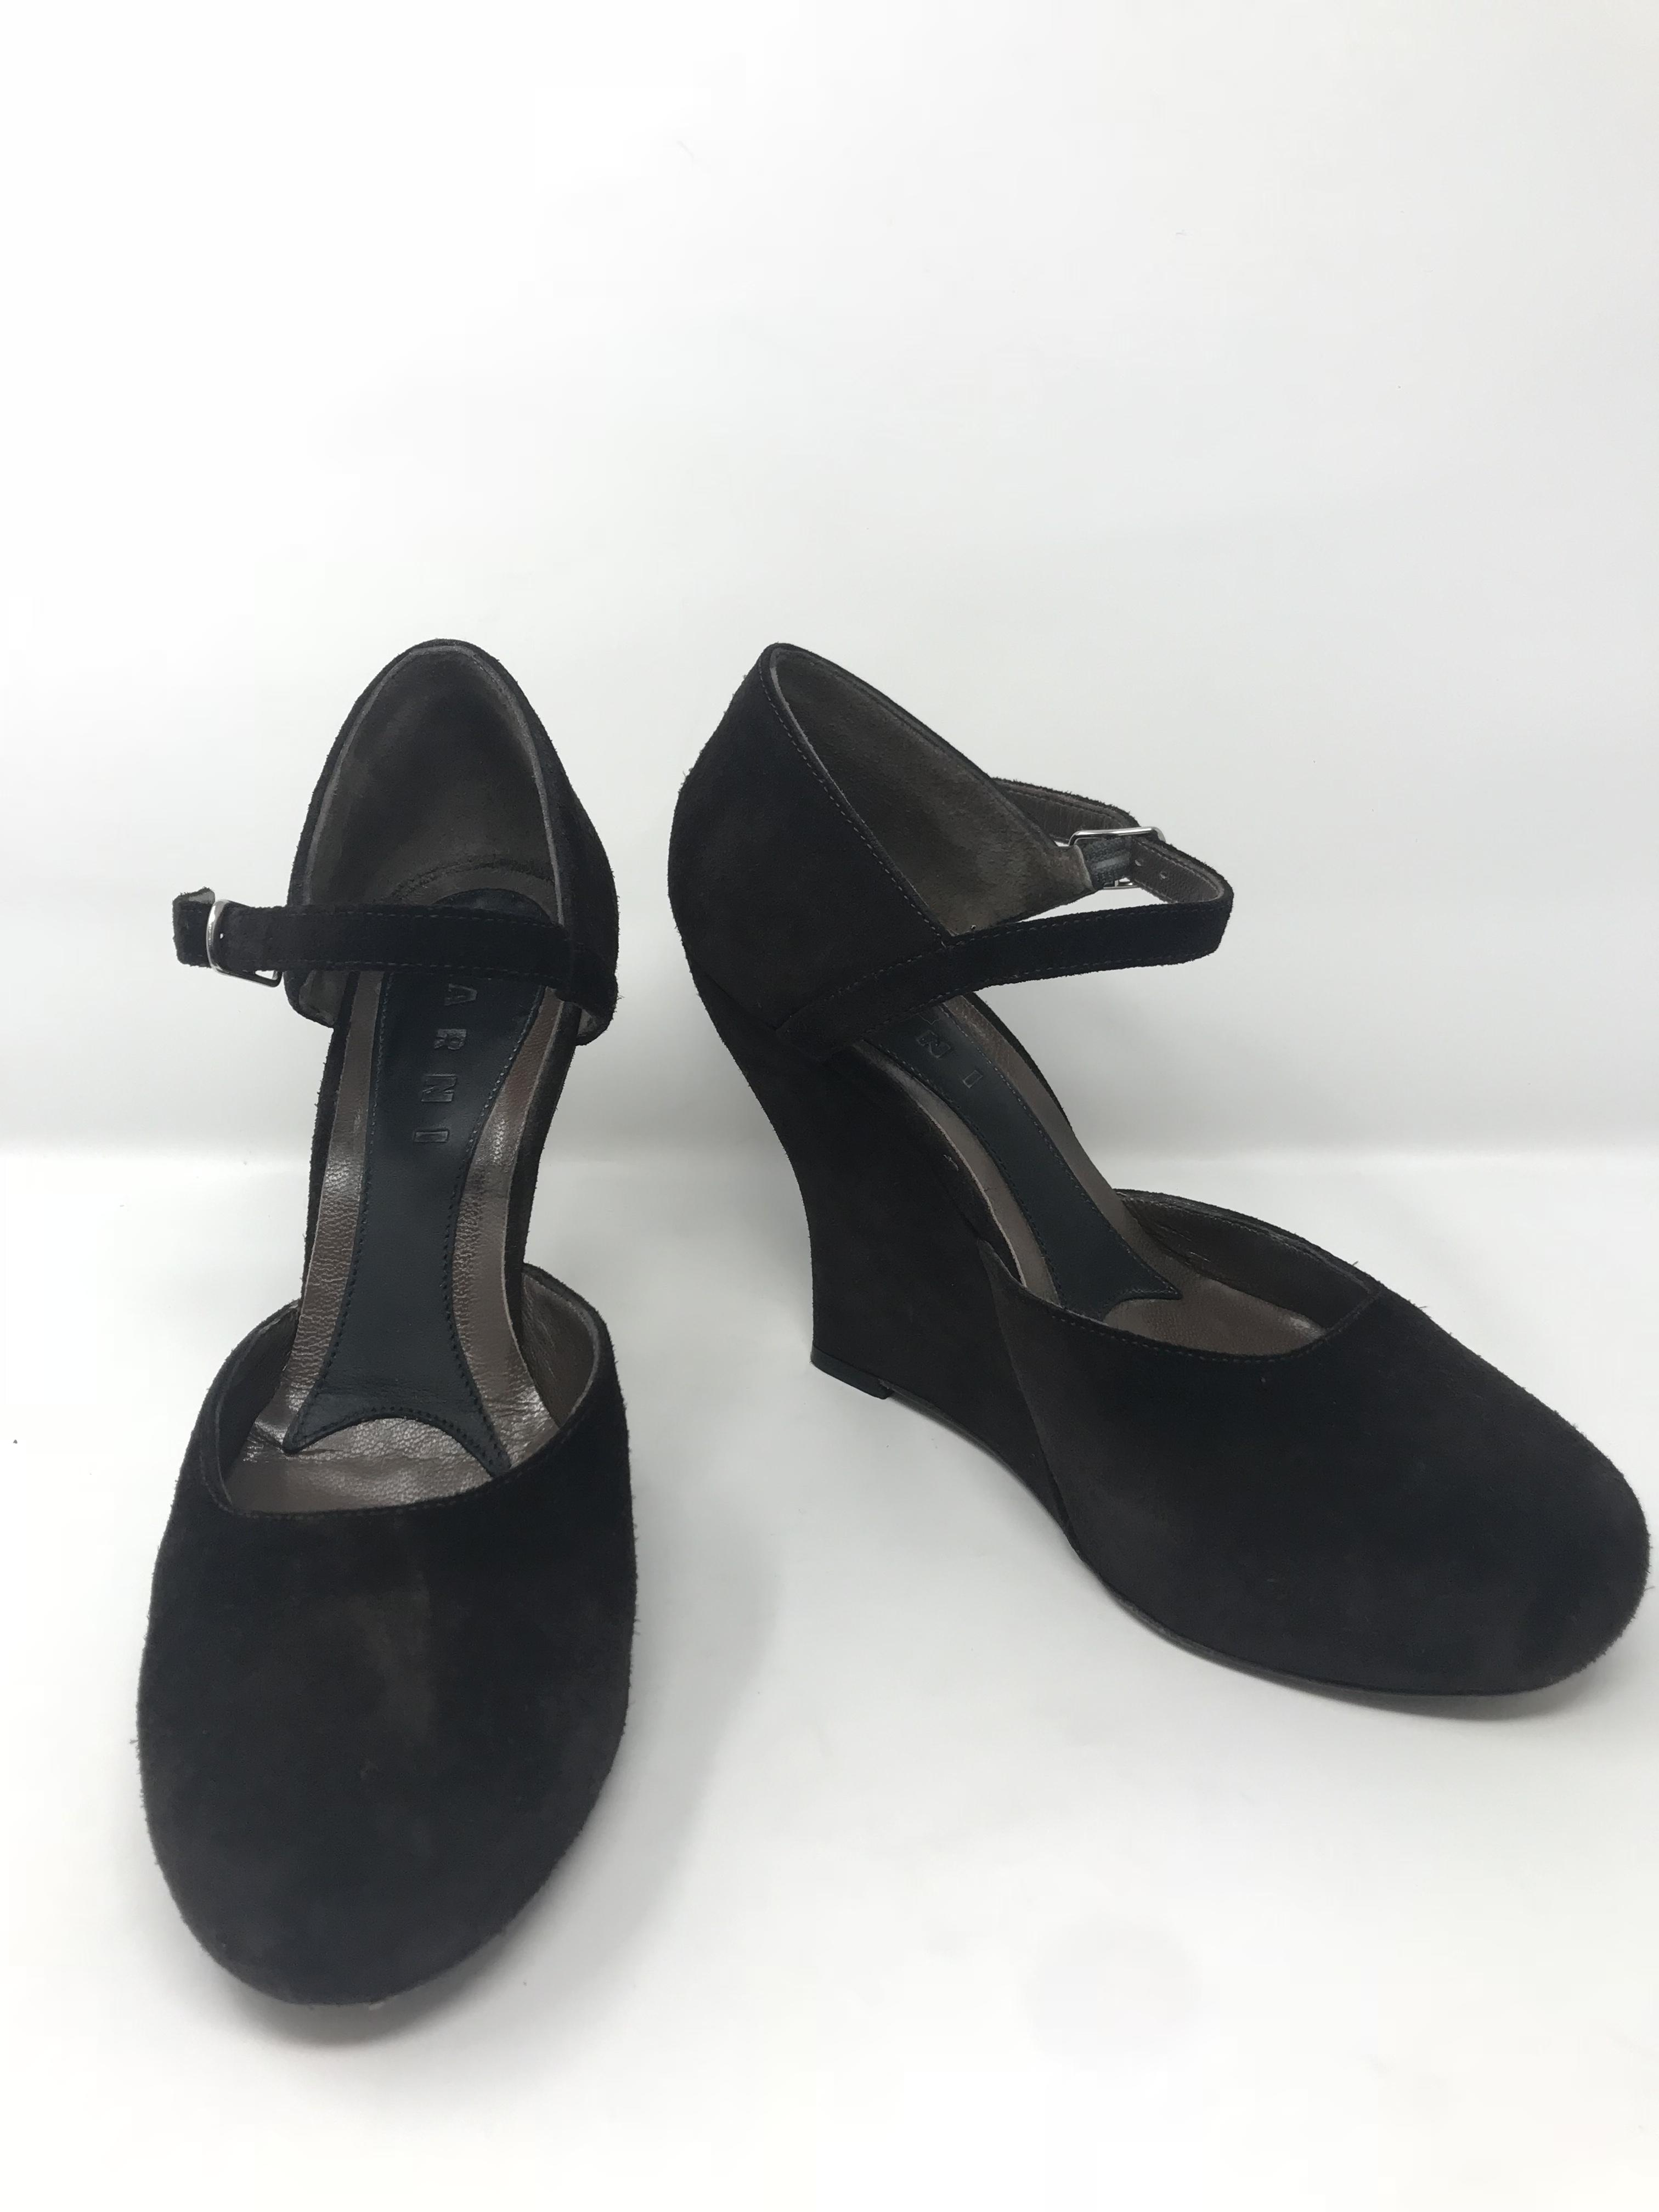 Marni Shoes Price: $89.99